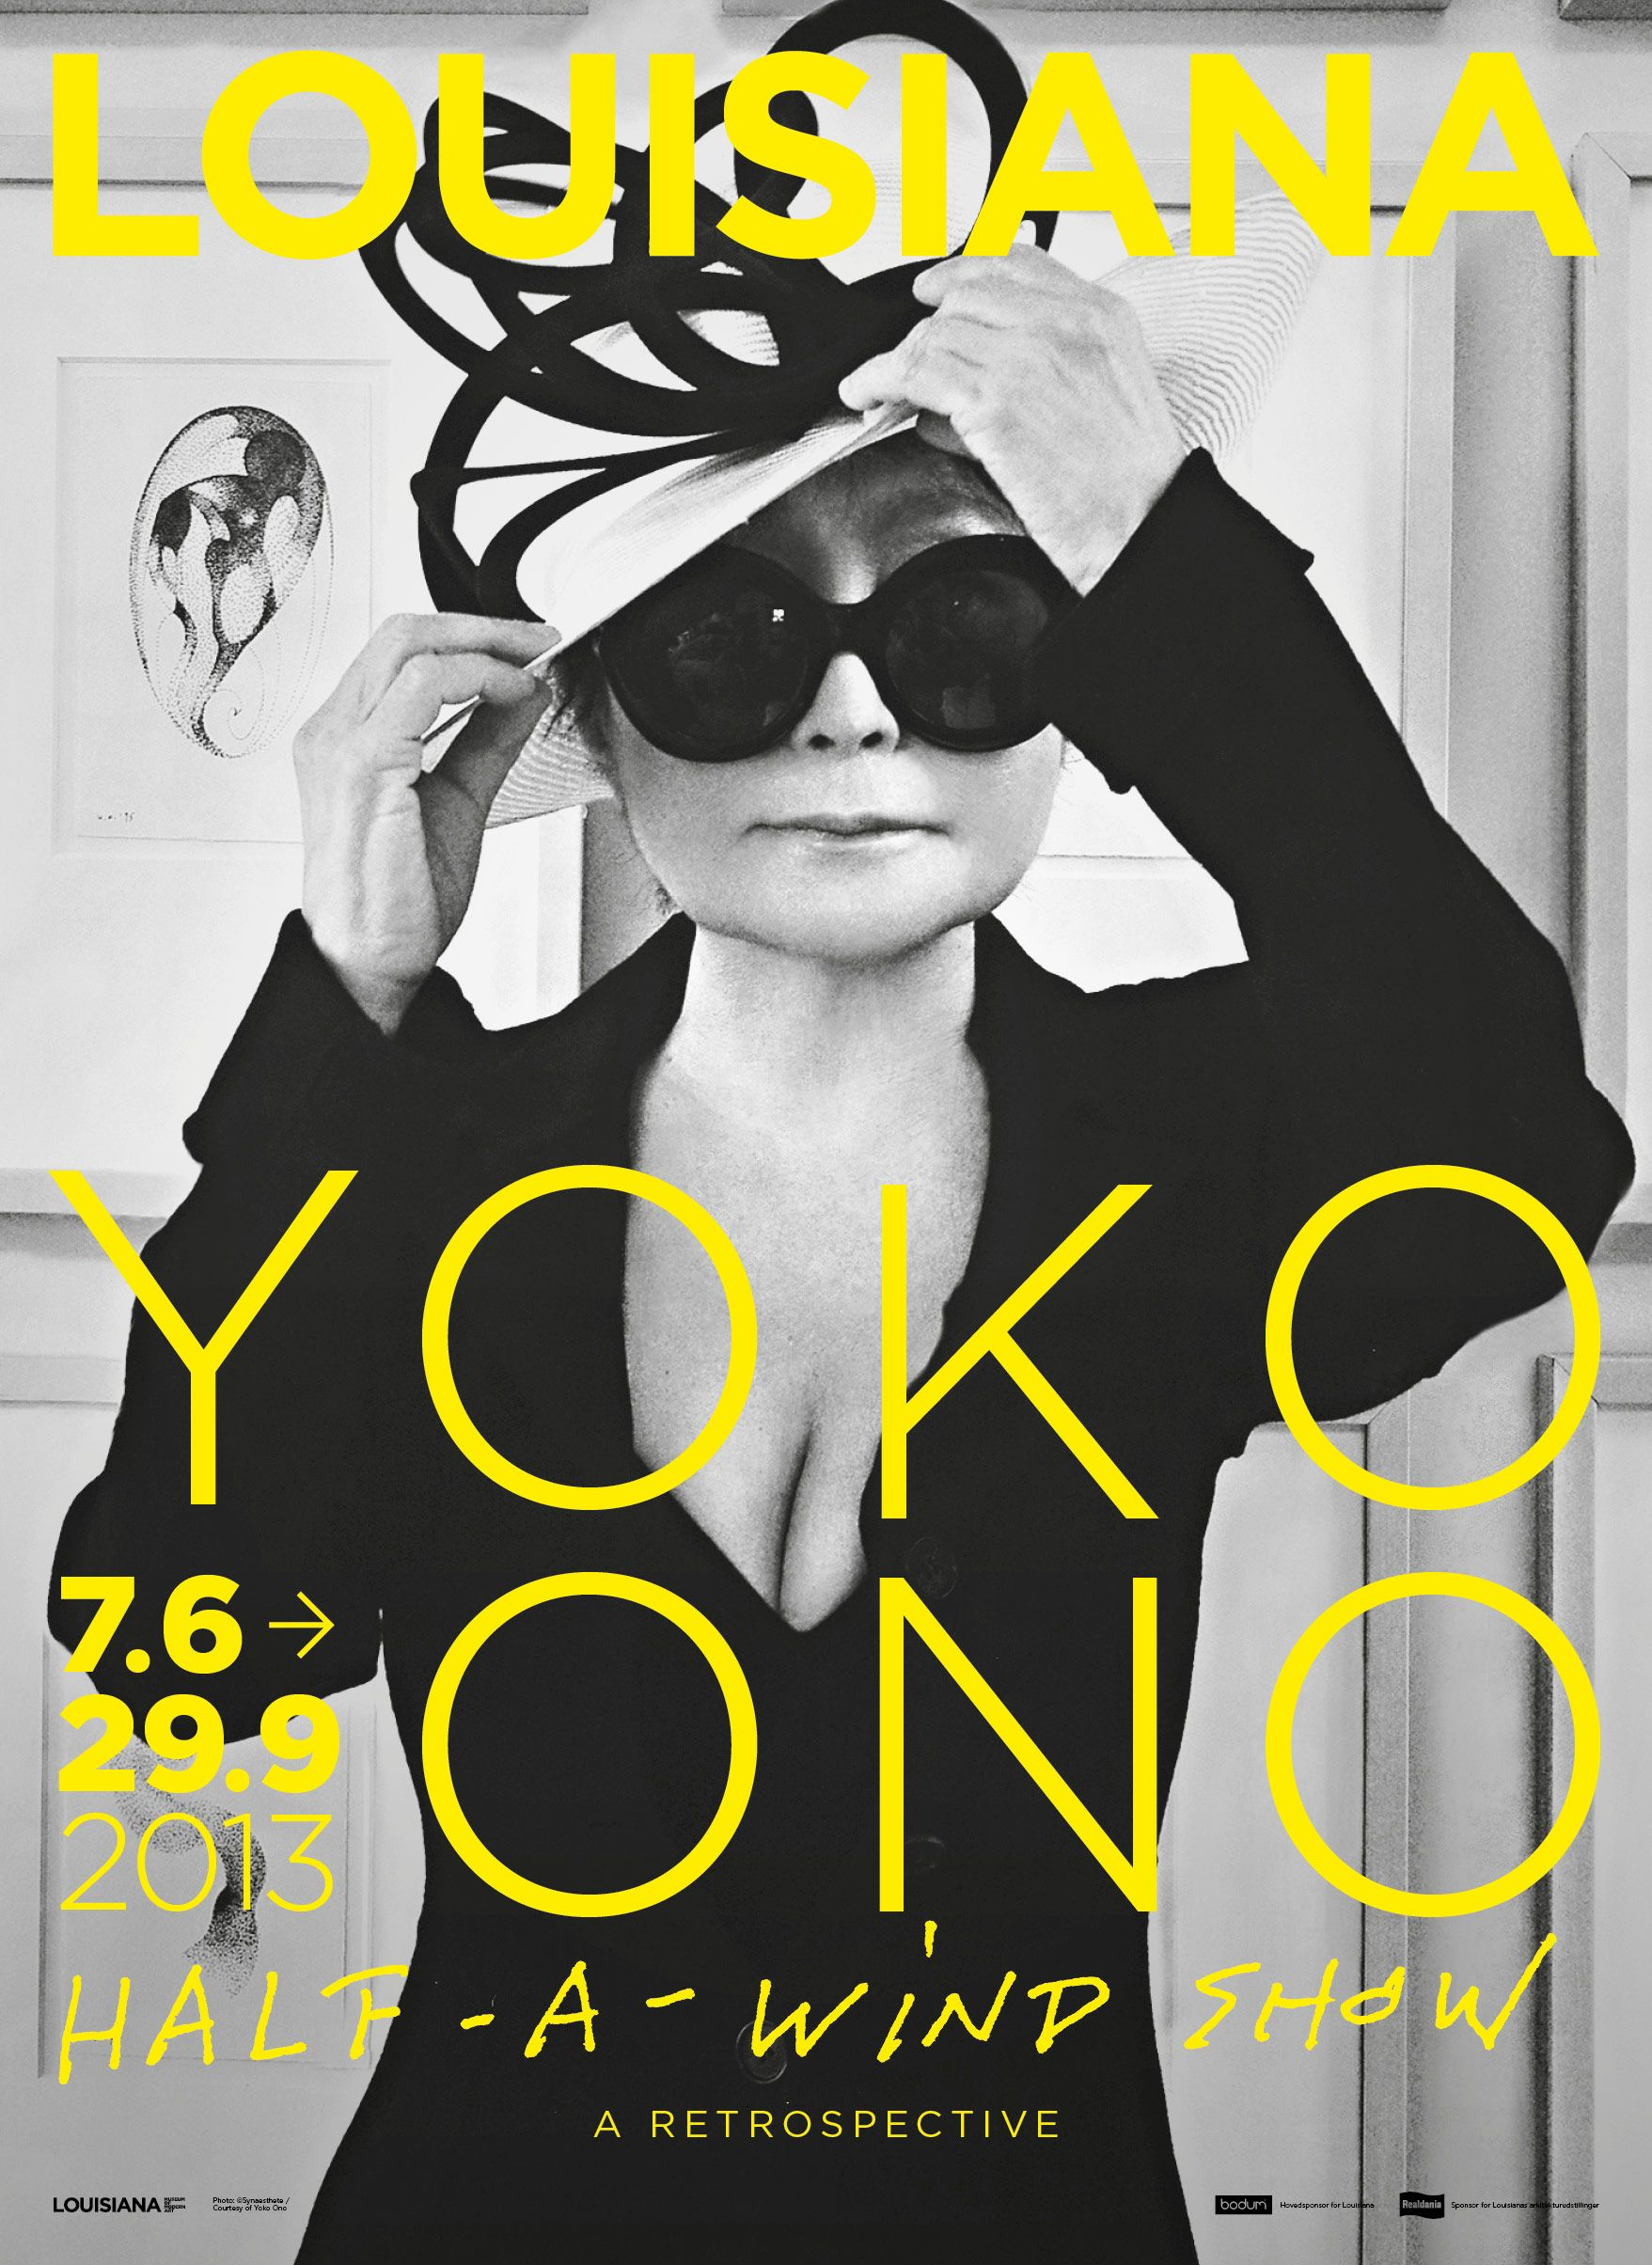 Yoko One Half A Wind Show Louisiana Museum From 7 6 29 9 2013 Museum Poster Exhibition Poster Yoko Ono